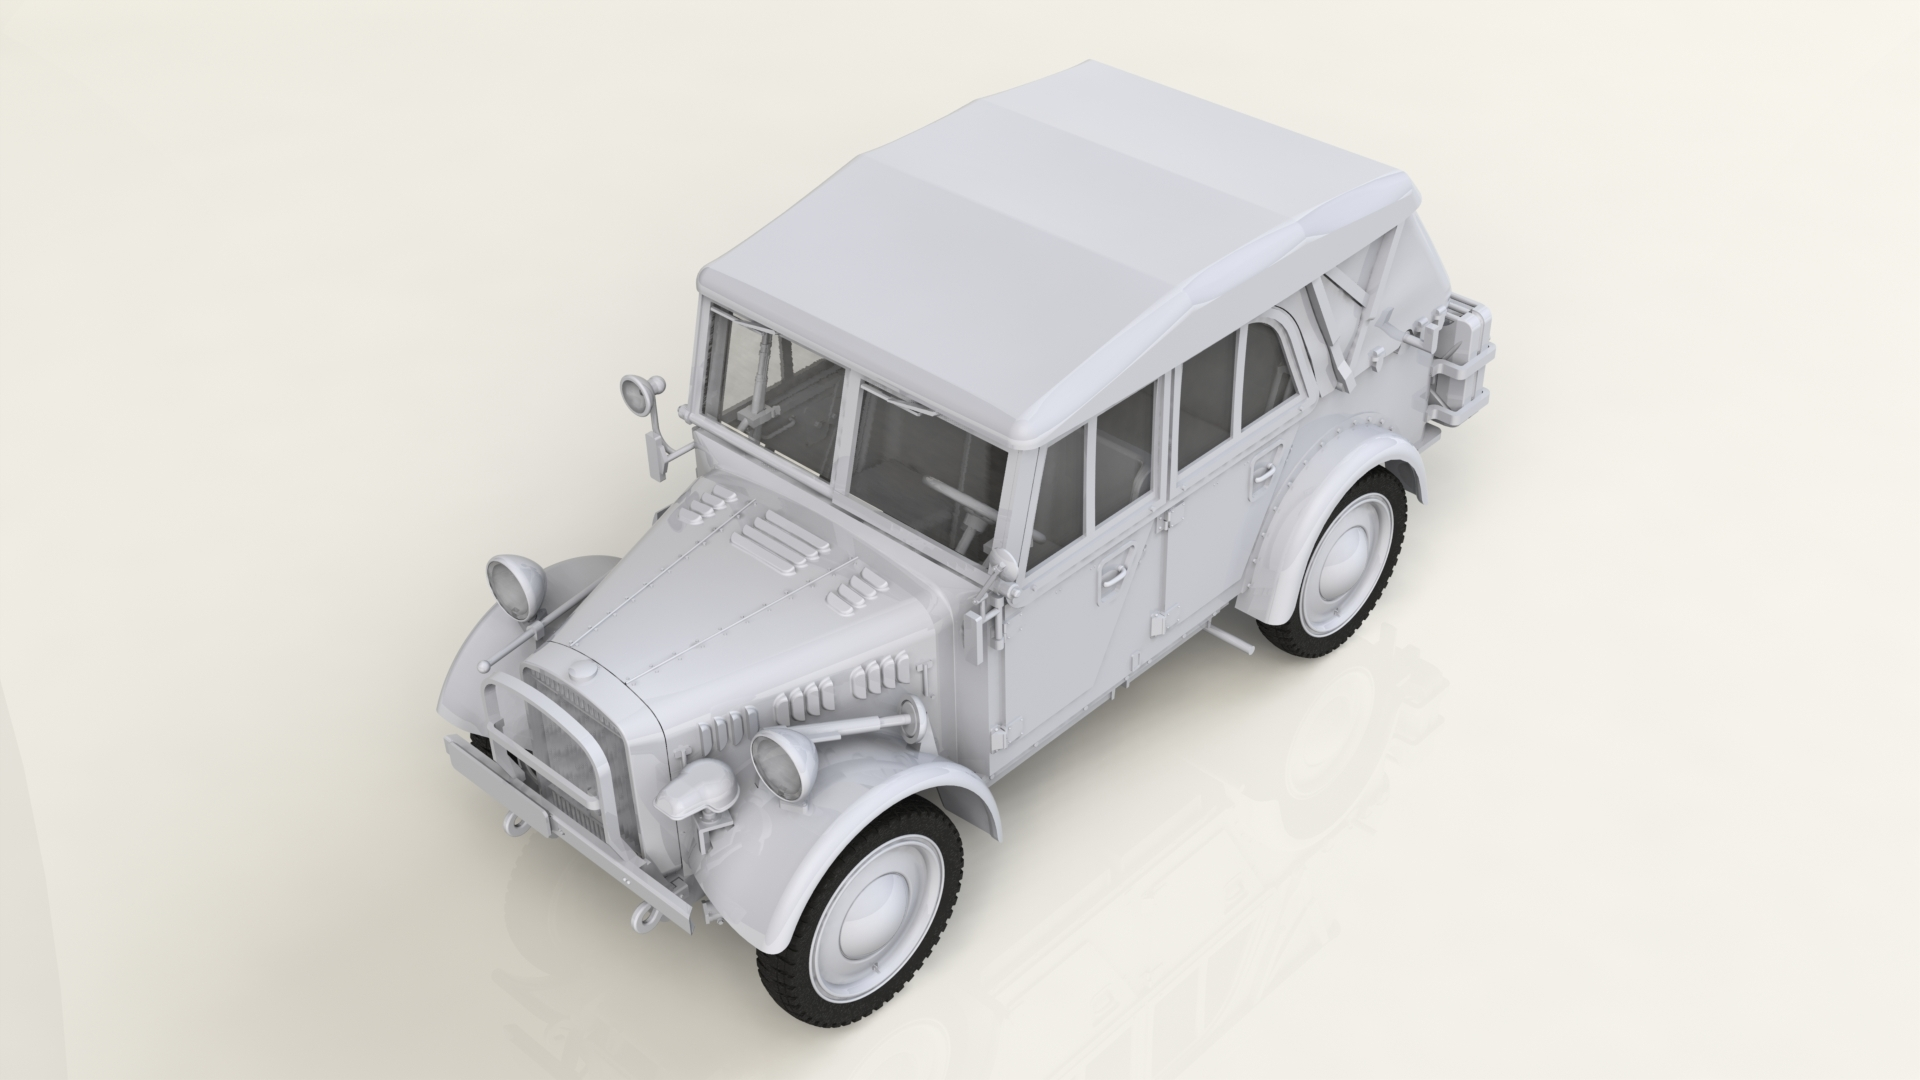 1/35 le.gl.Einheitz-Pkw Kfz.1 Soft Top, WWII German Light Personnel Car 35582